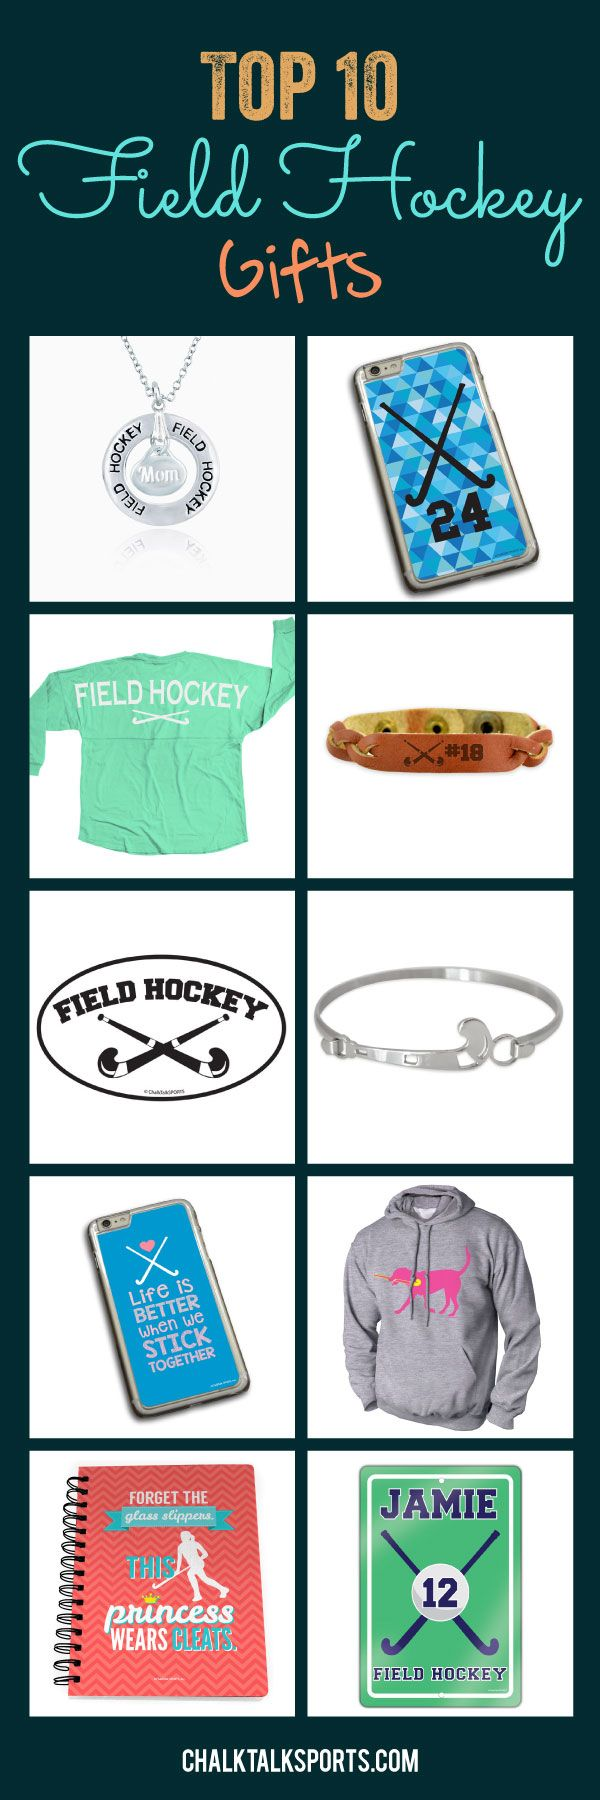 Start thinking about end of season gifts with our top 10 field hockey gifts for girls! Personalize our products to create a special gift for your favorite field hockey player. We offer statement jersey tees, beautiful jewelry, notebooks, phone cases and so much more that field hockey players and field hockey fans will love! Only from ChalkTalkSPORTS.com!